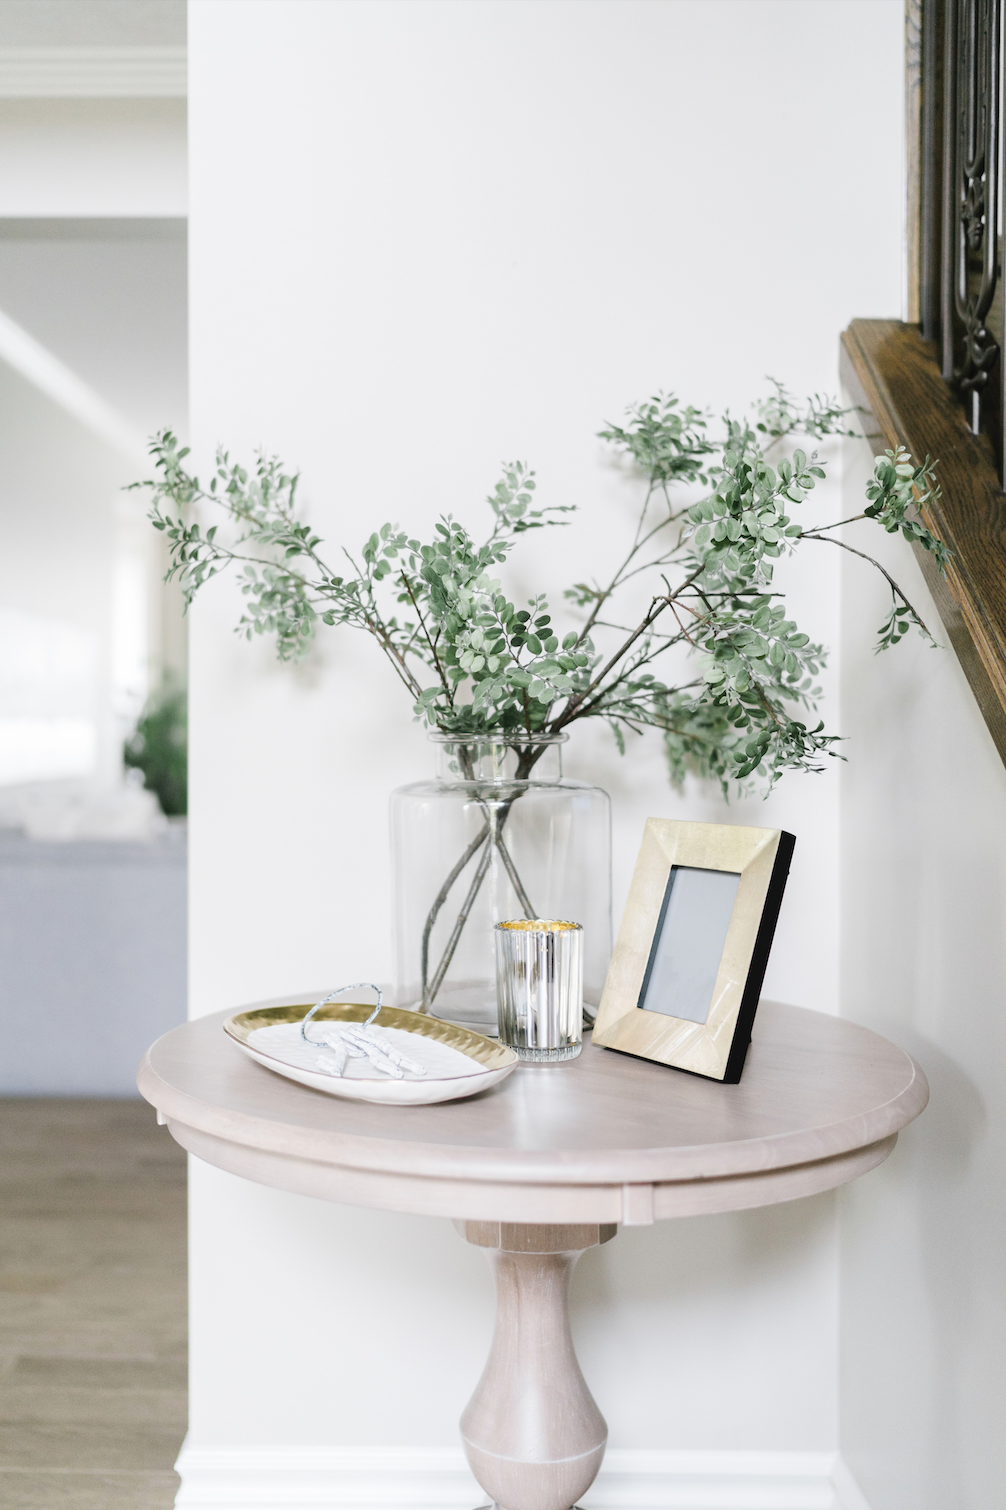 leanne bunnell interiors calgary vignette round pink table gold frame plant accessories